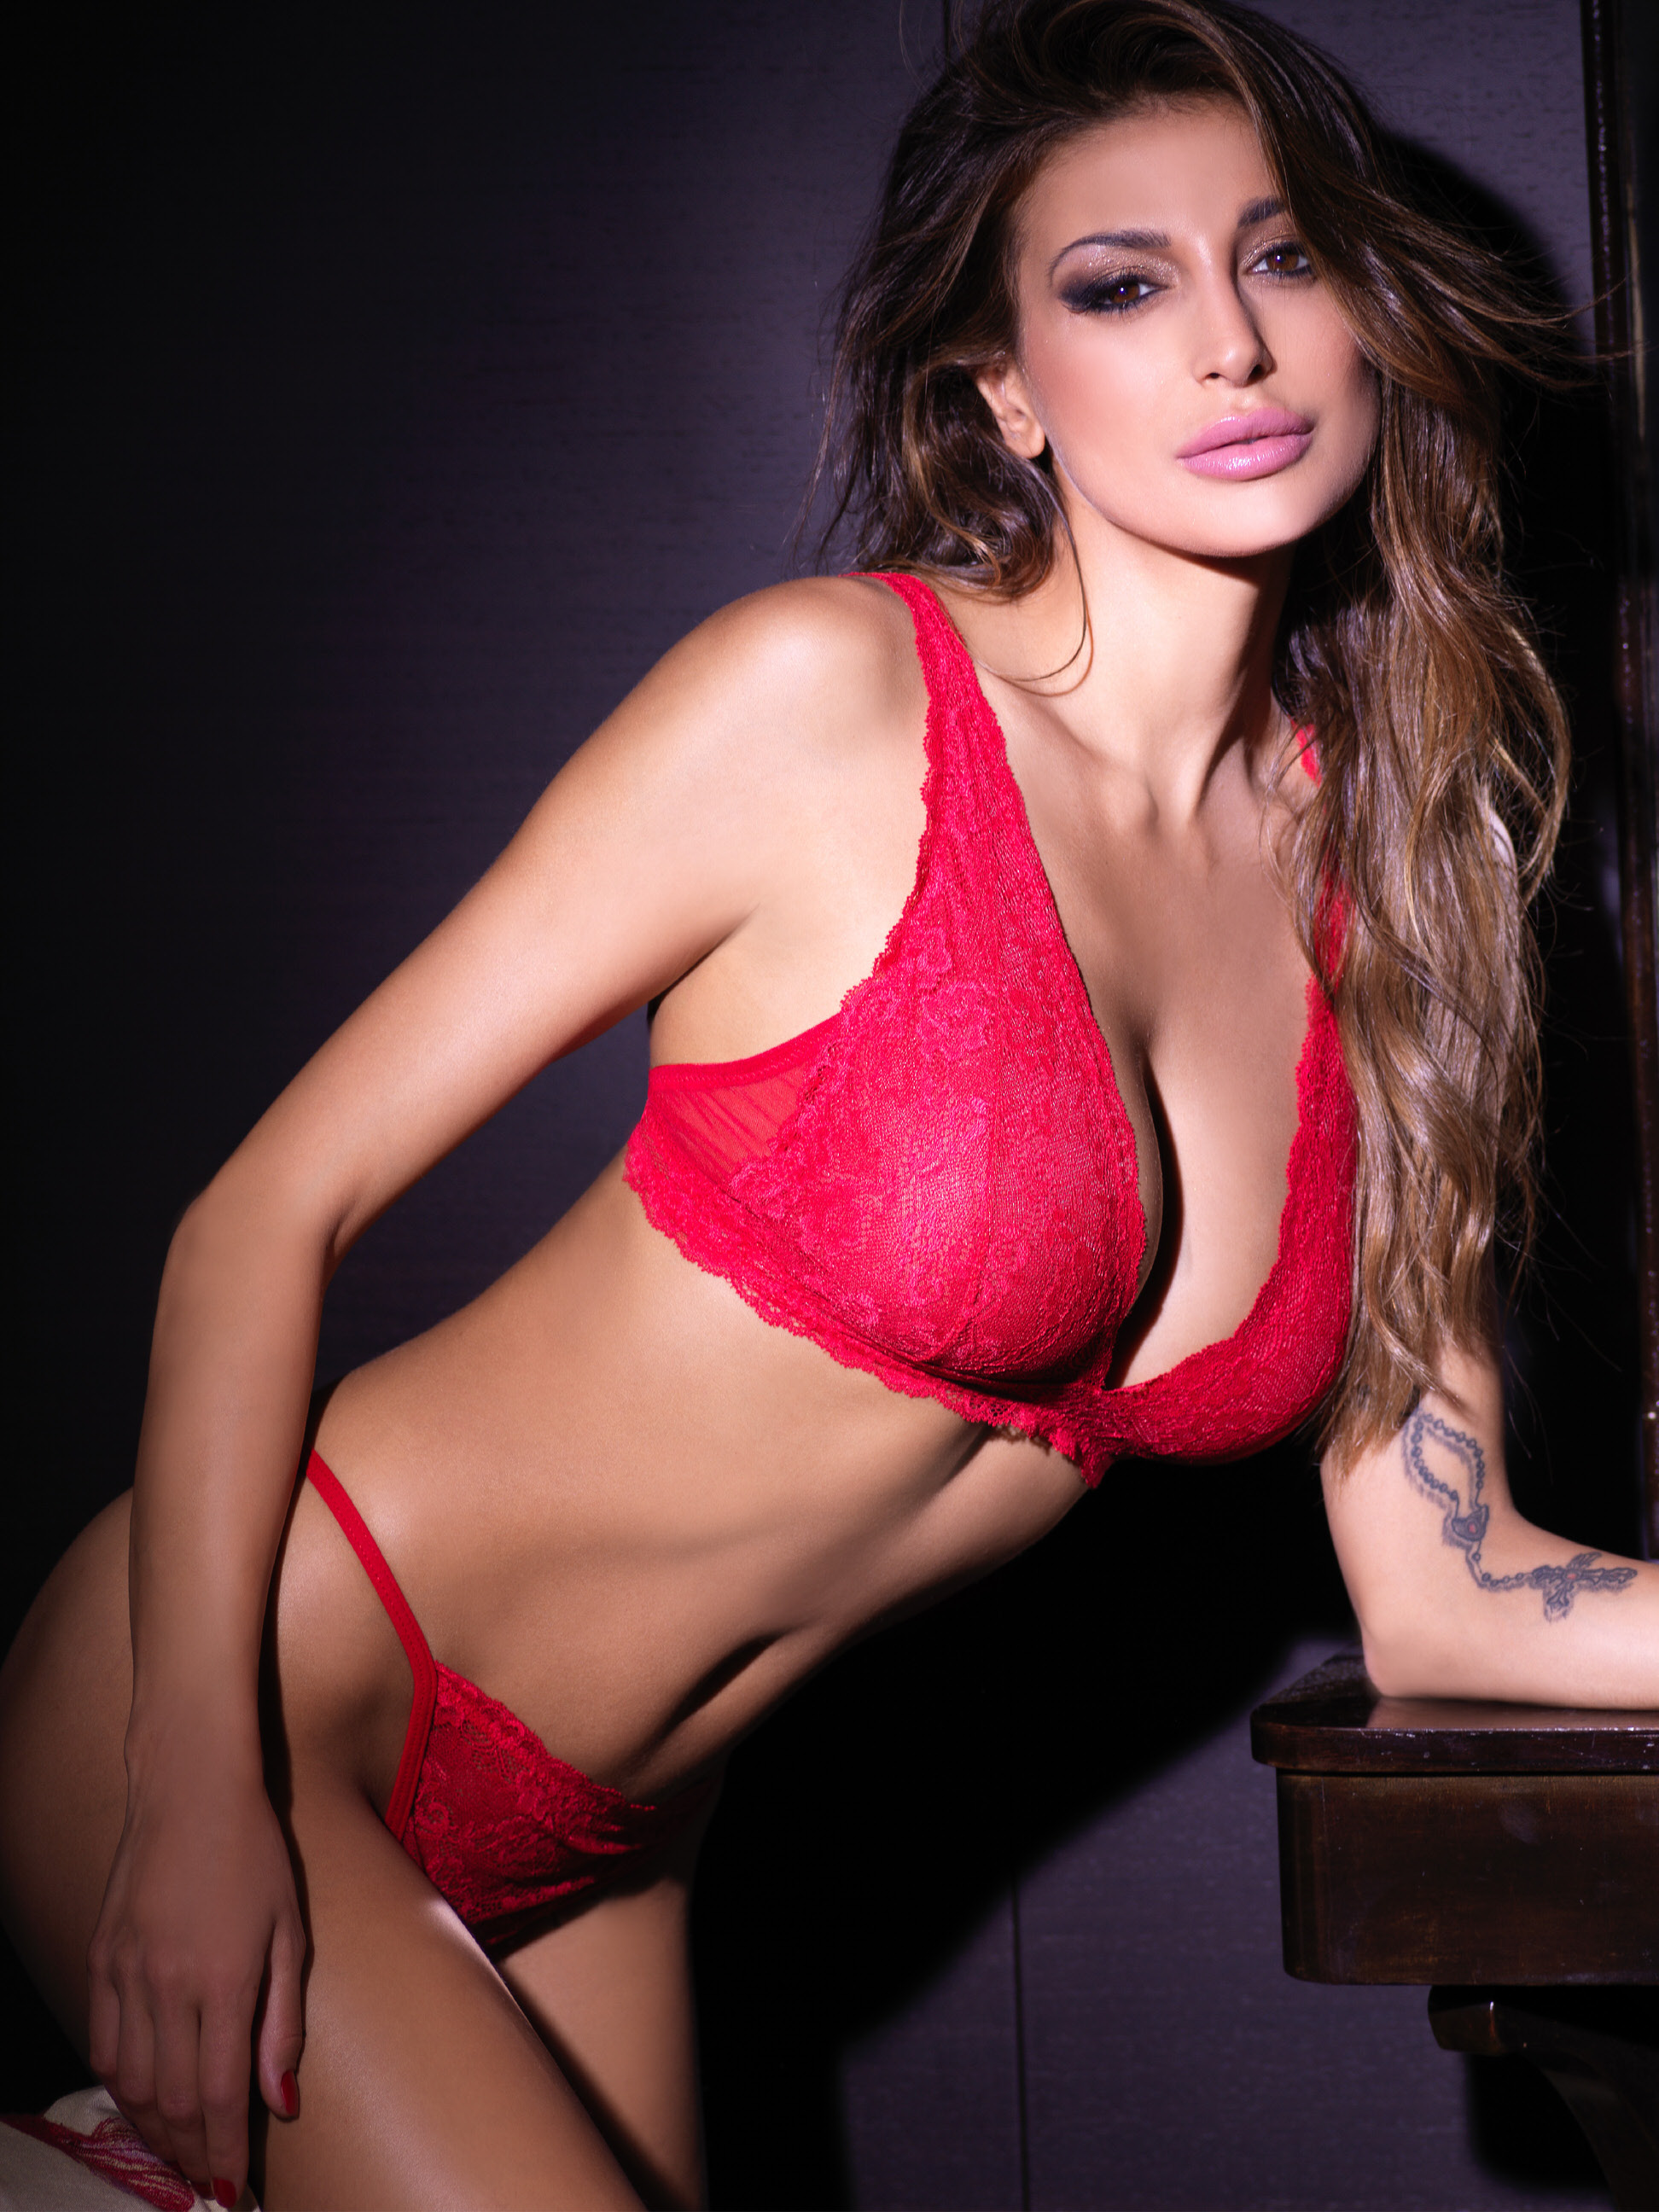 INTIMO ROSSO